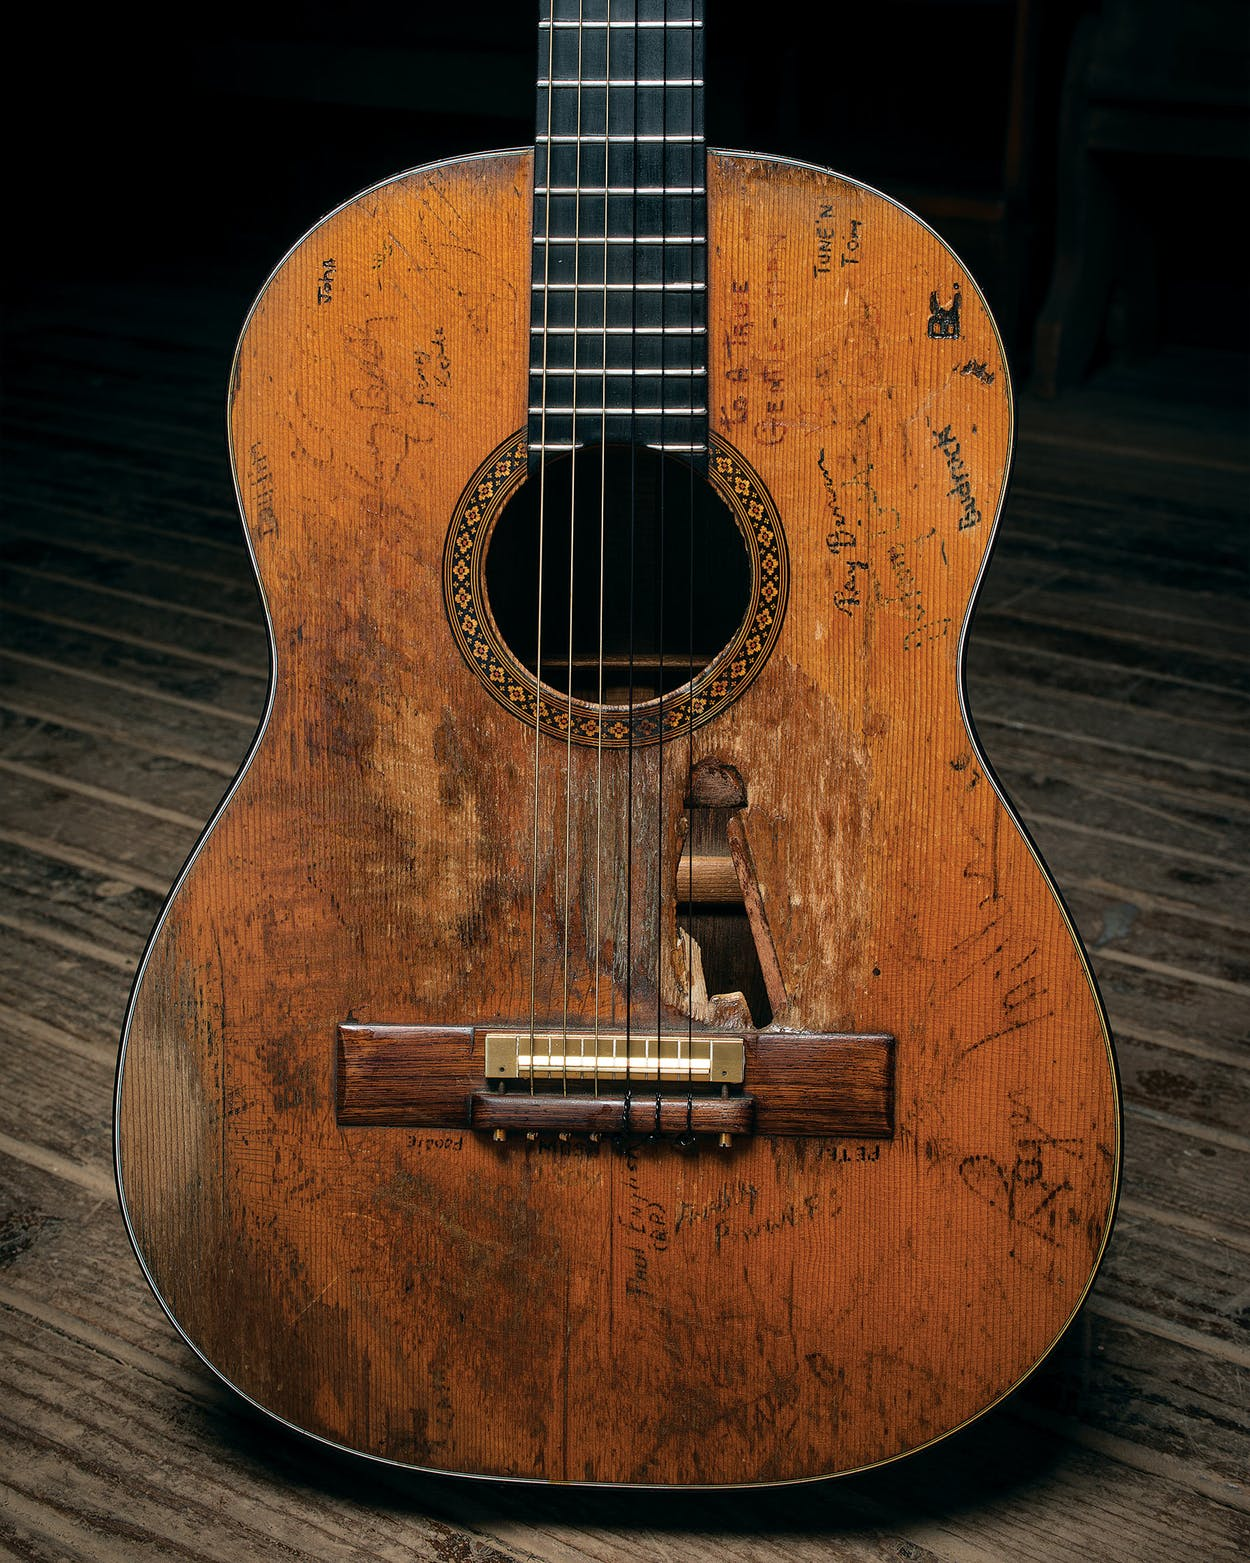 Willie Nelson's longtime guitar, Trigger, photographed at Nelson's ranch.